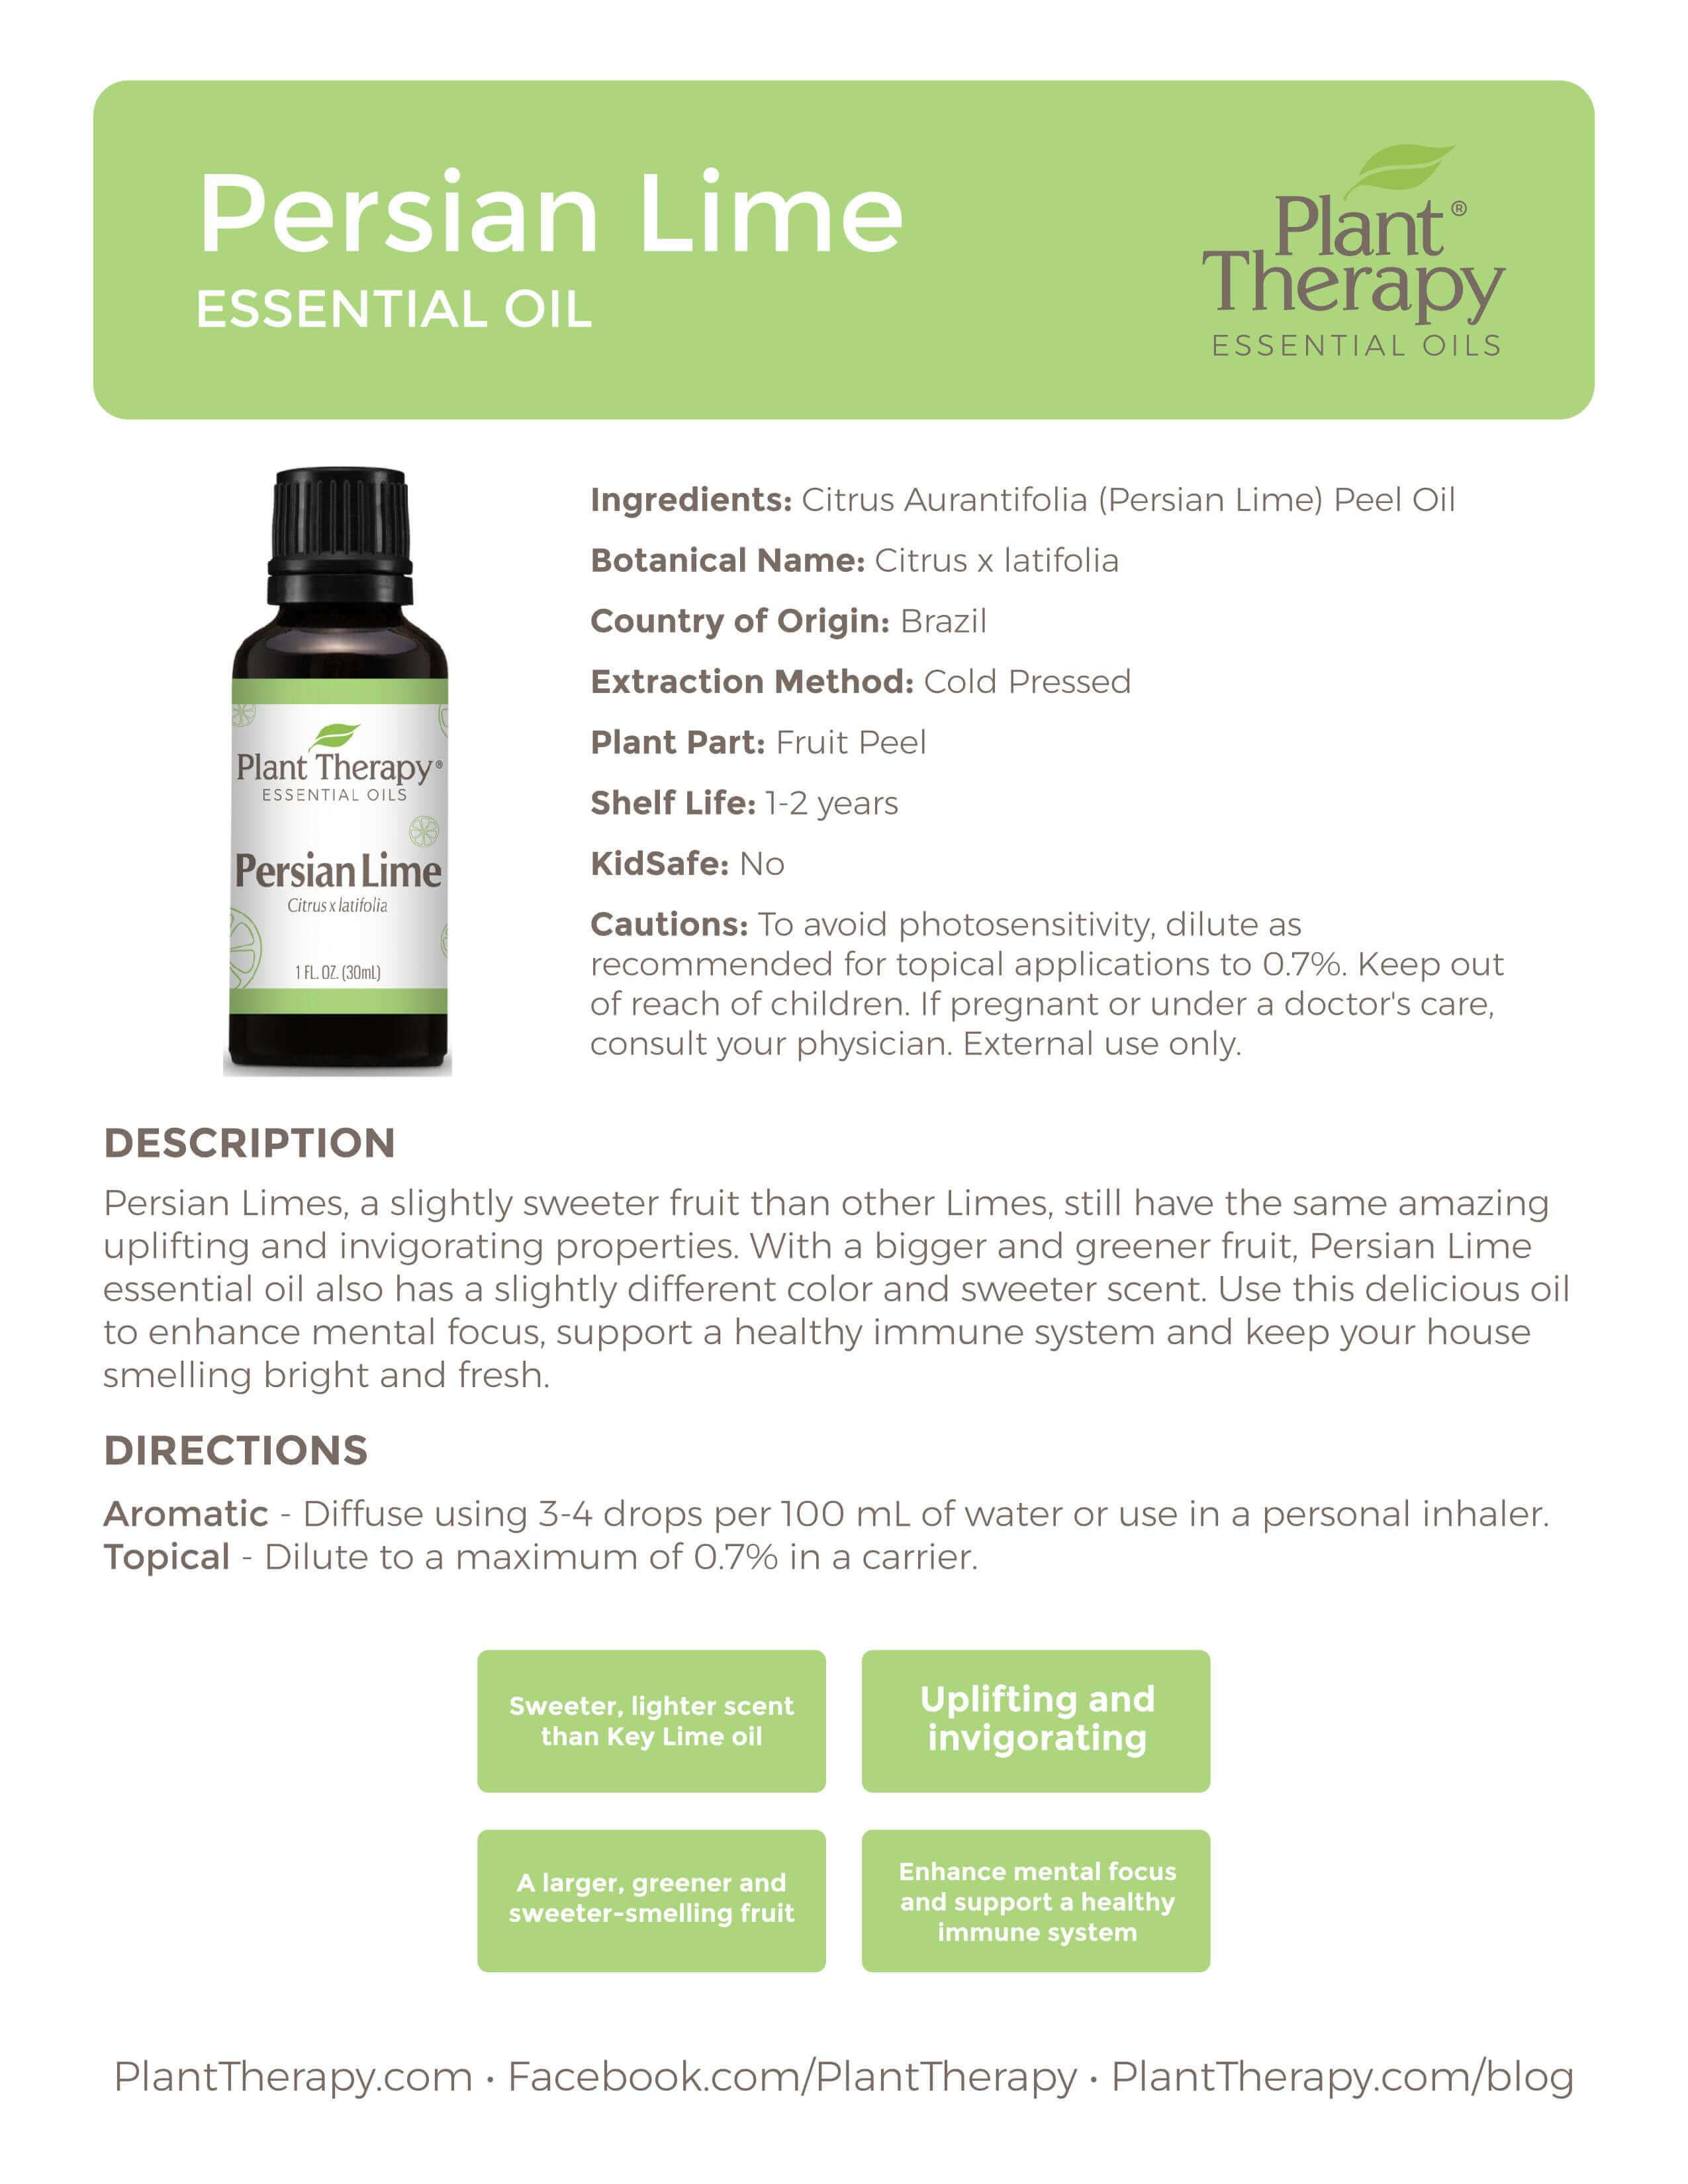 Persian Lime essential oil